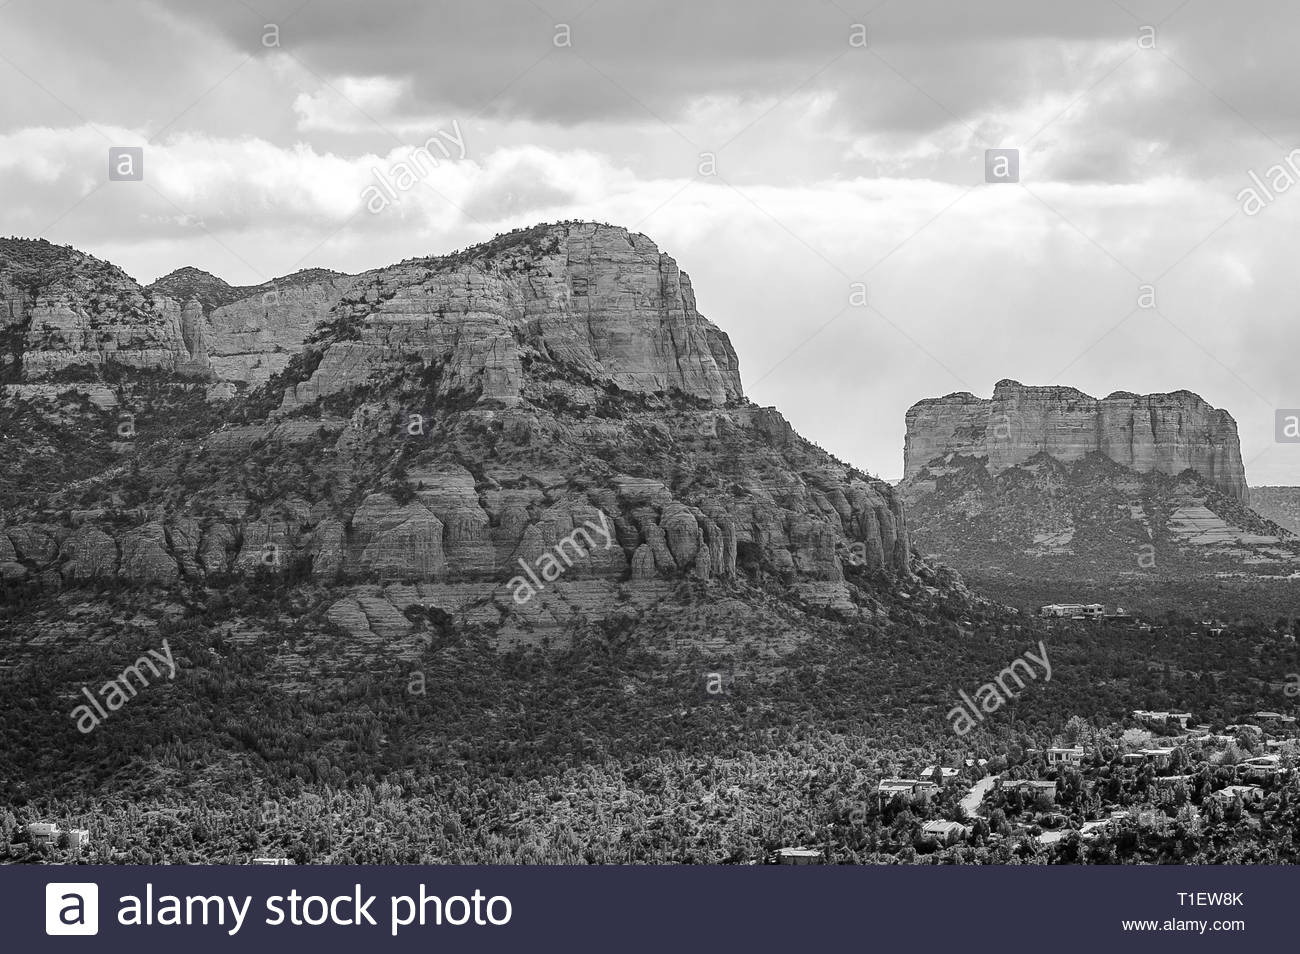 Landscape of the red rocks of Sedona, Arizona in black and white. These mountains are towering over the small town. - Stock Image